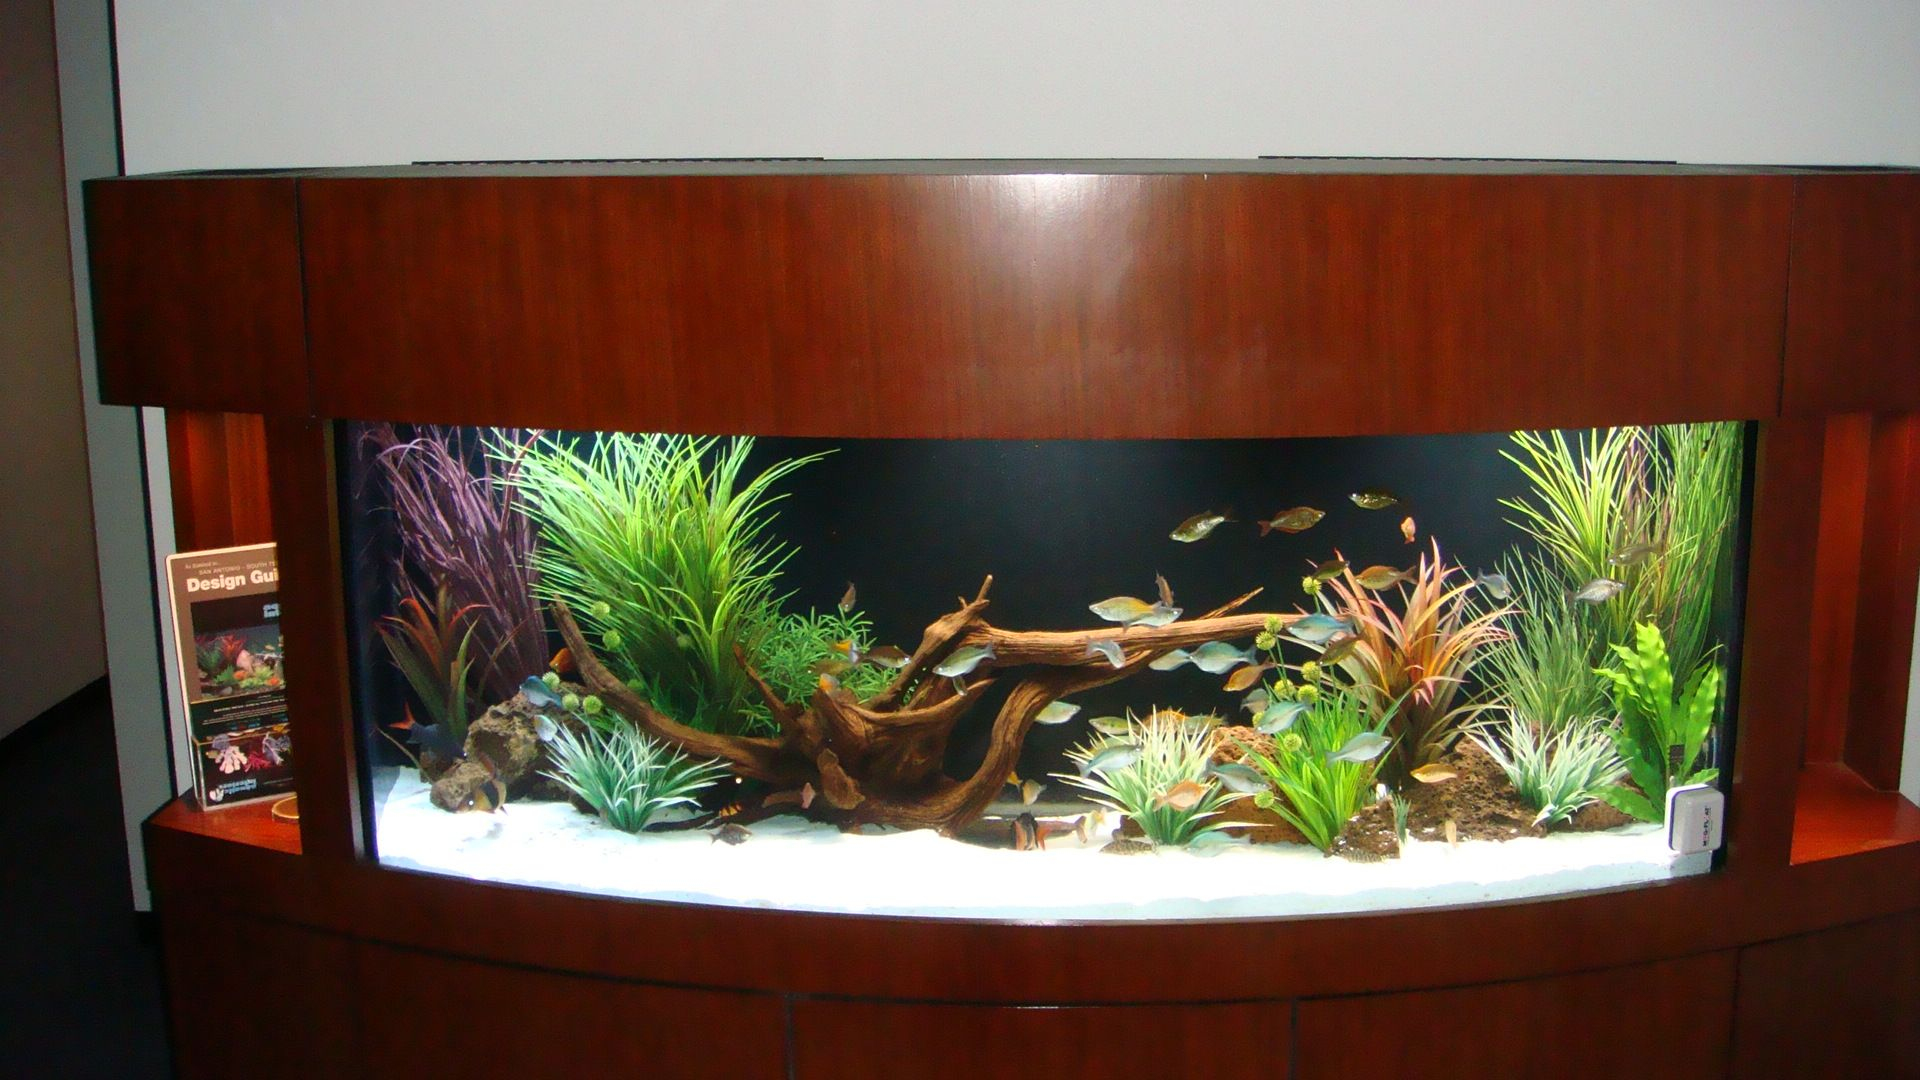 Transform the way your home looks using a fish tank fish for Aquarium decoration ideas freshwater